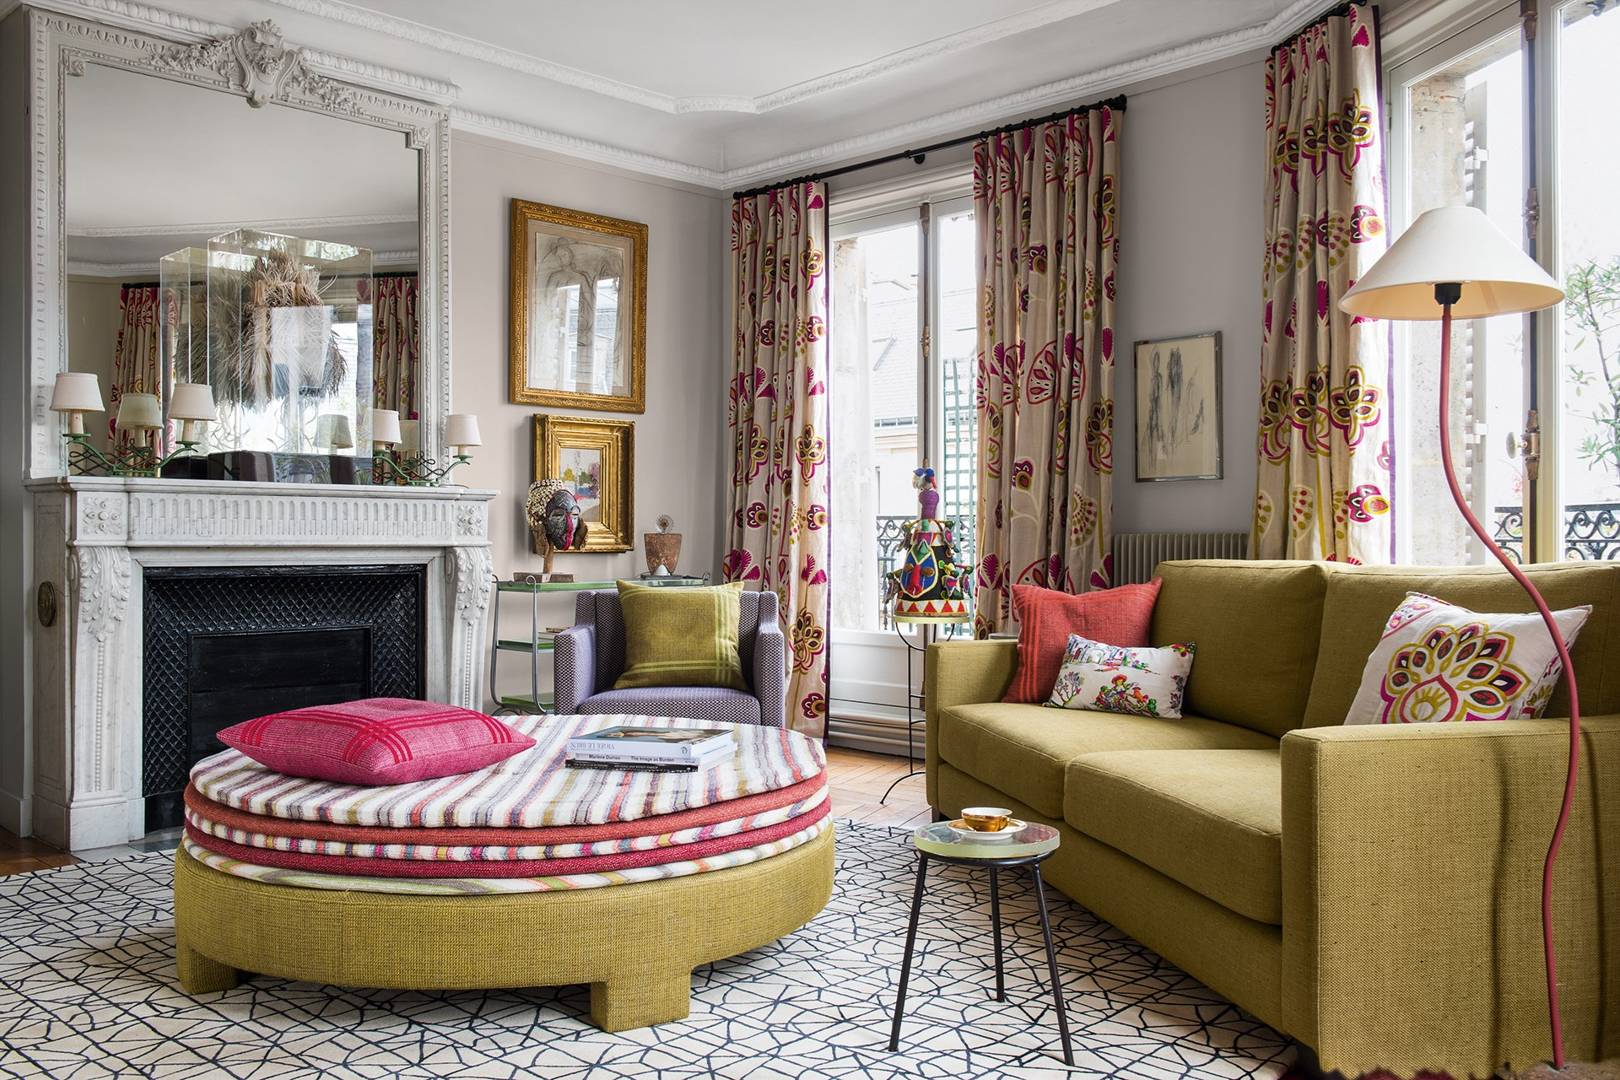 patrick-freys-paris-apt.jpg